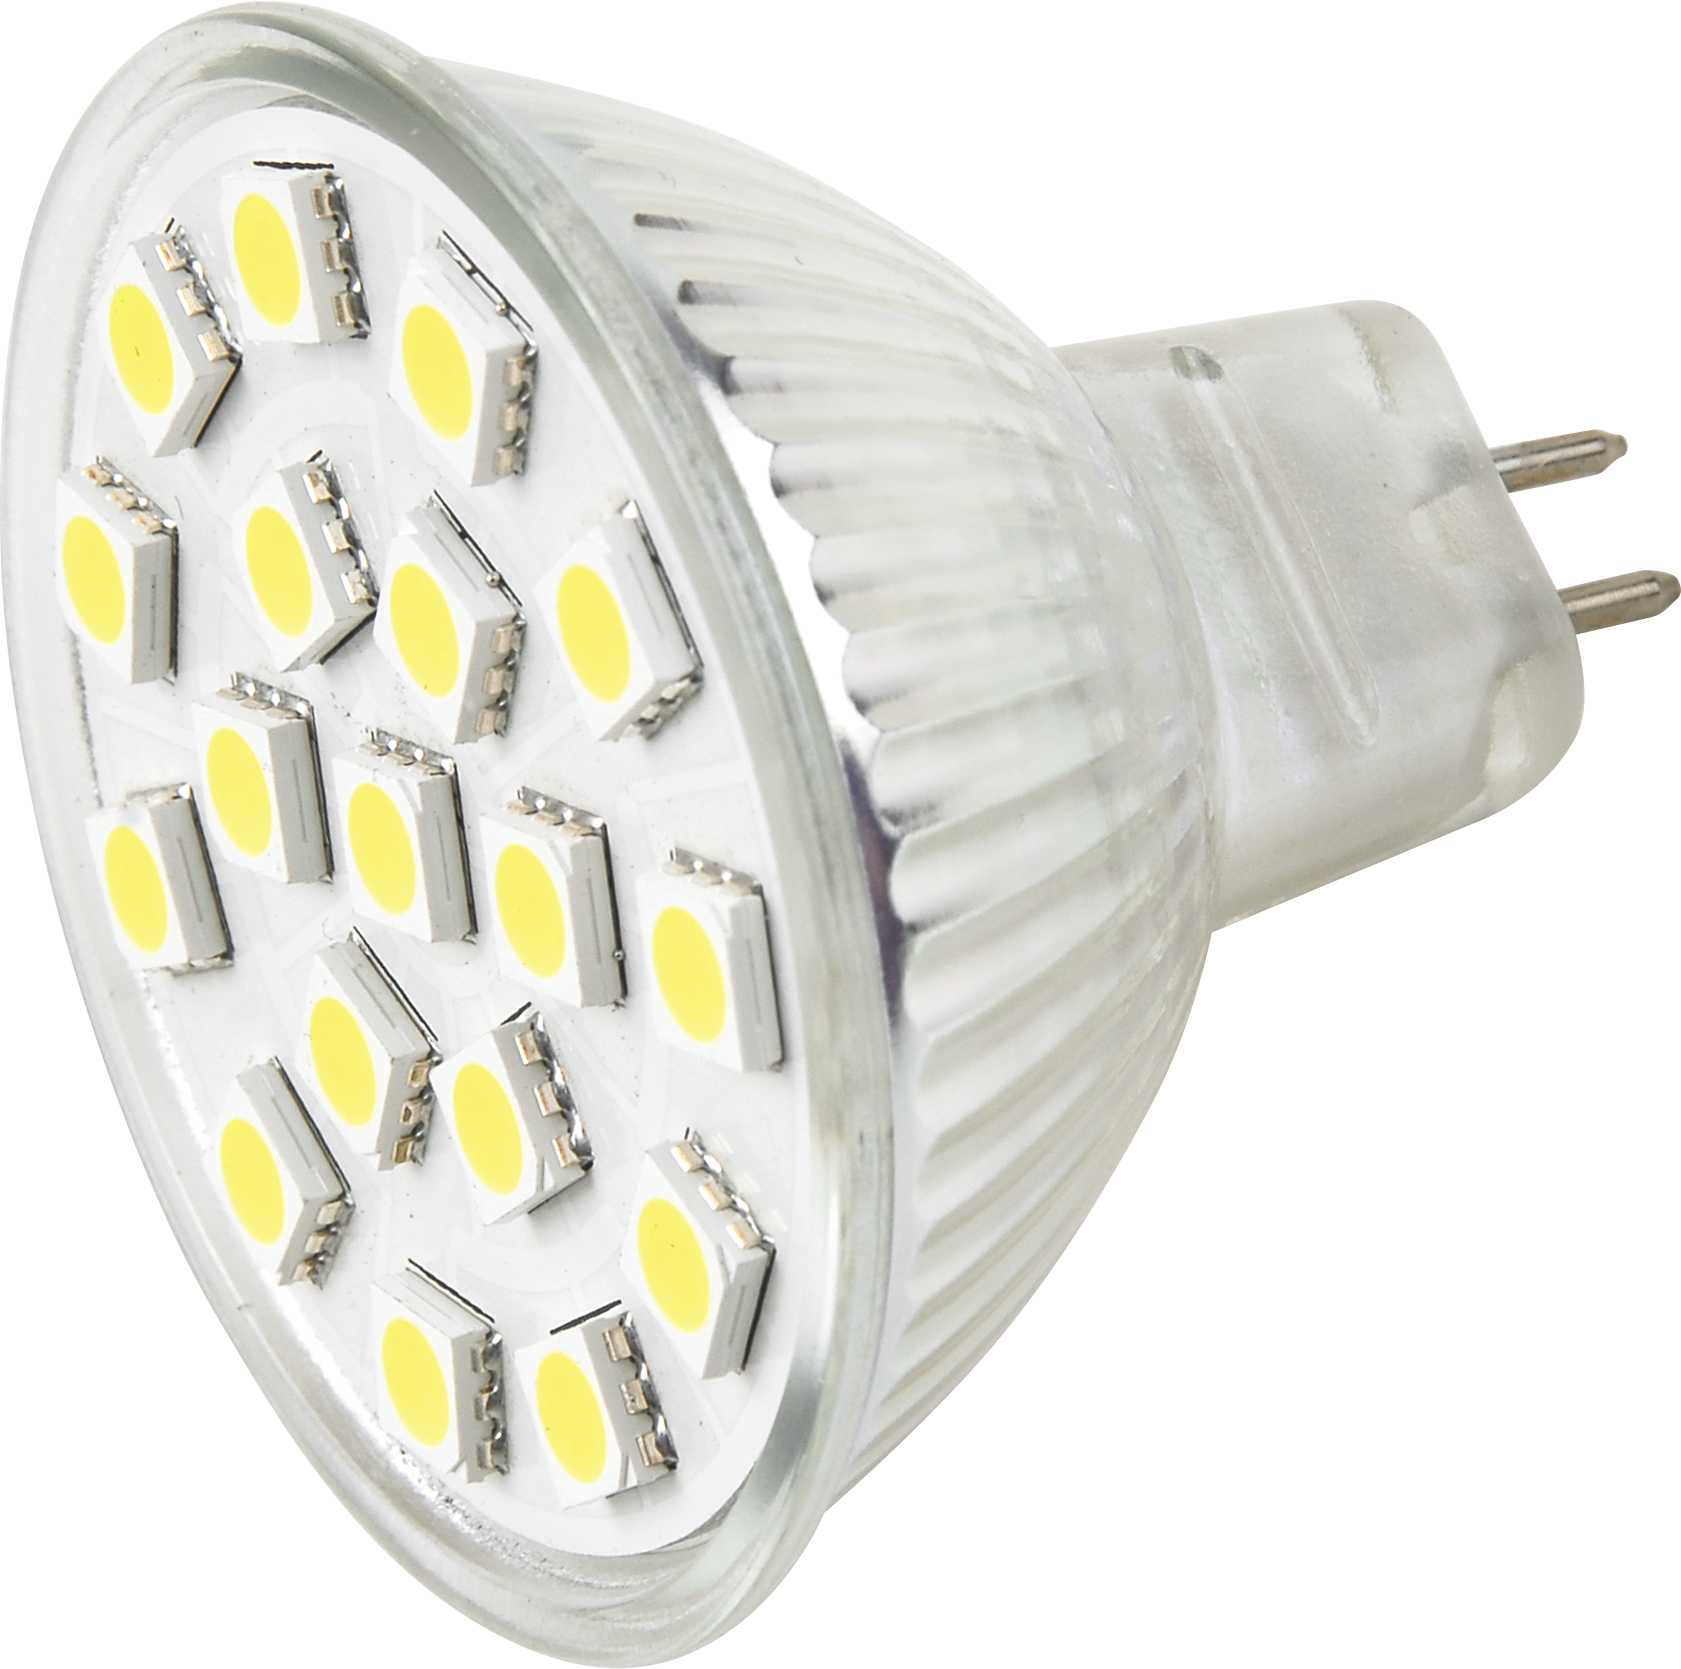 301 moved permanently Led light bulbs cost